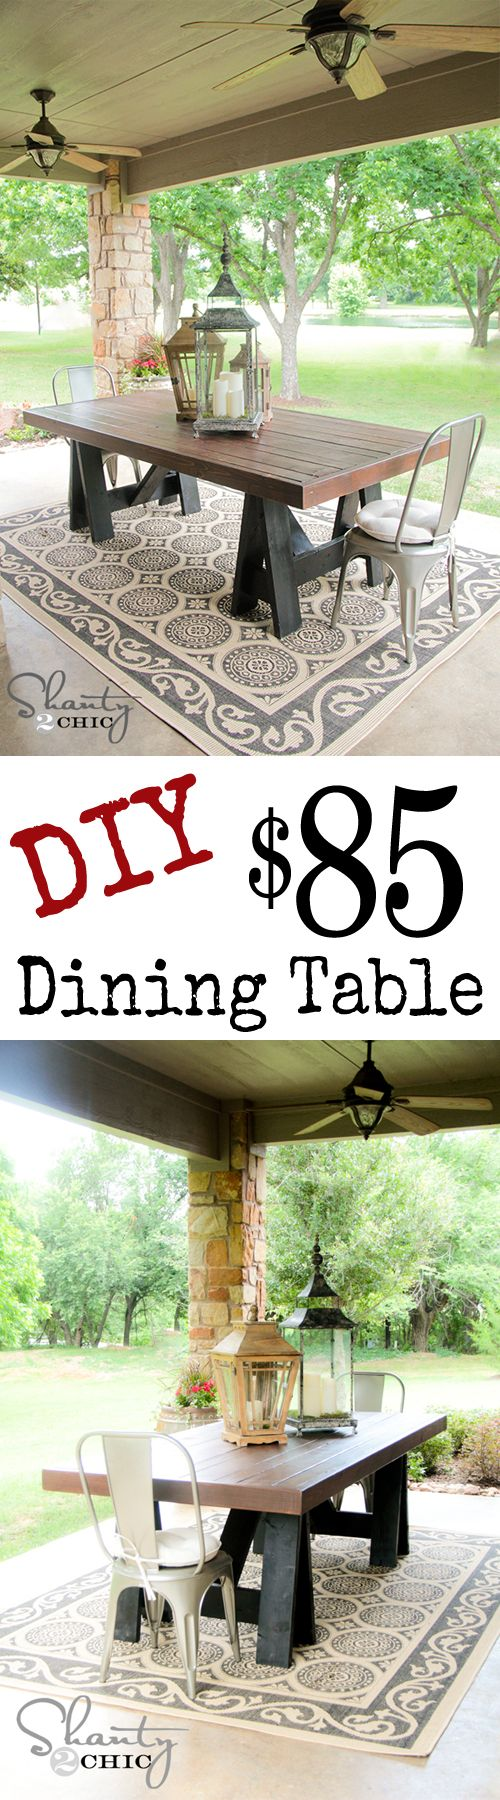 DIY Pottery Barn Dining Table!  LOVE! @ShanTil Yell-2-Chic.com